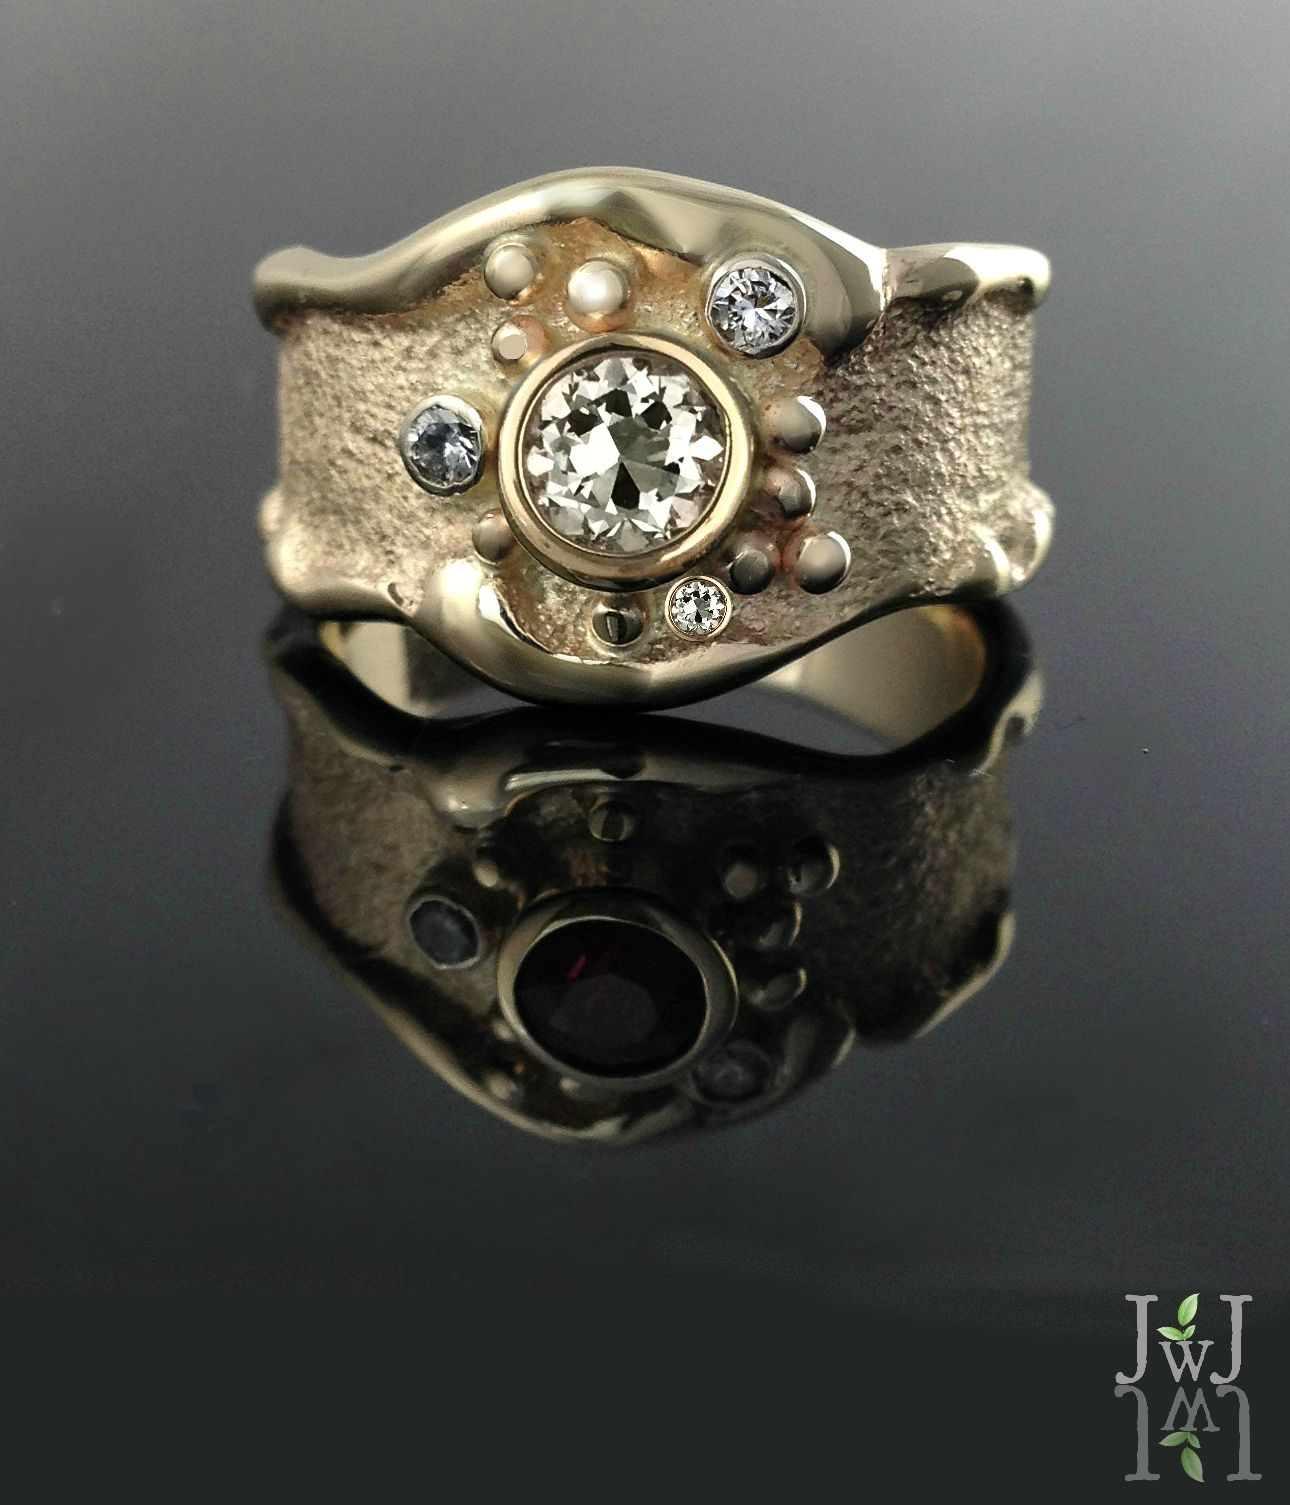 Redesign Your Wedding Rings After The Loss Of Your Spouse